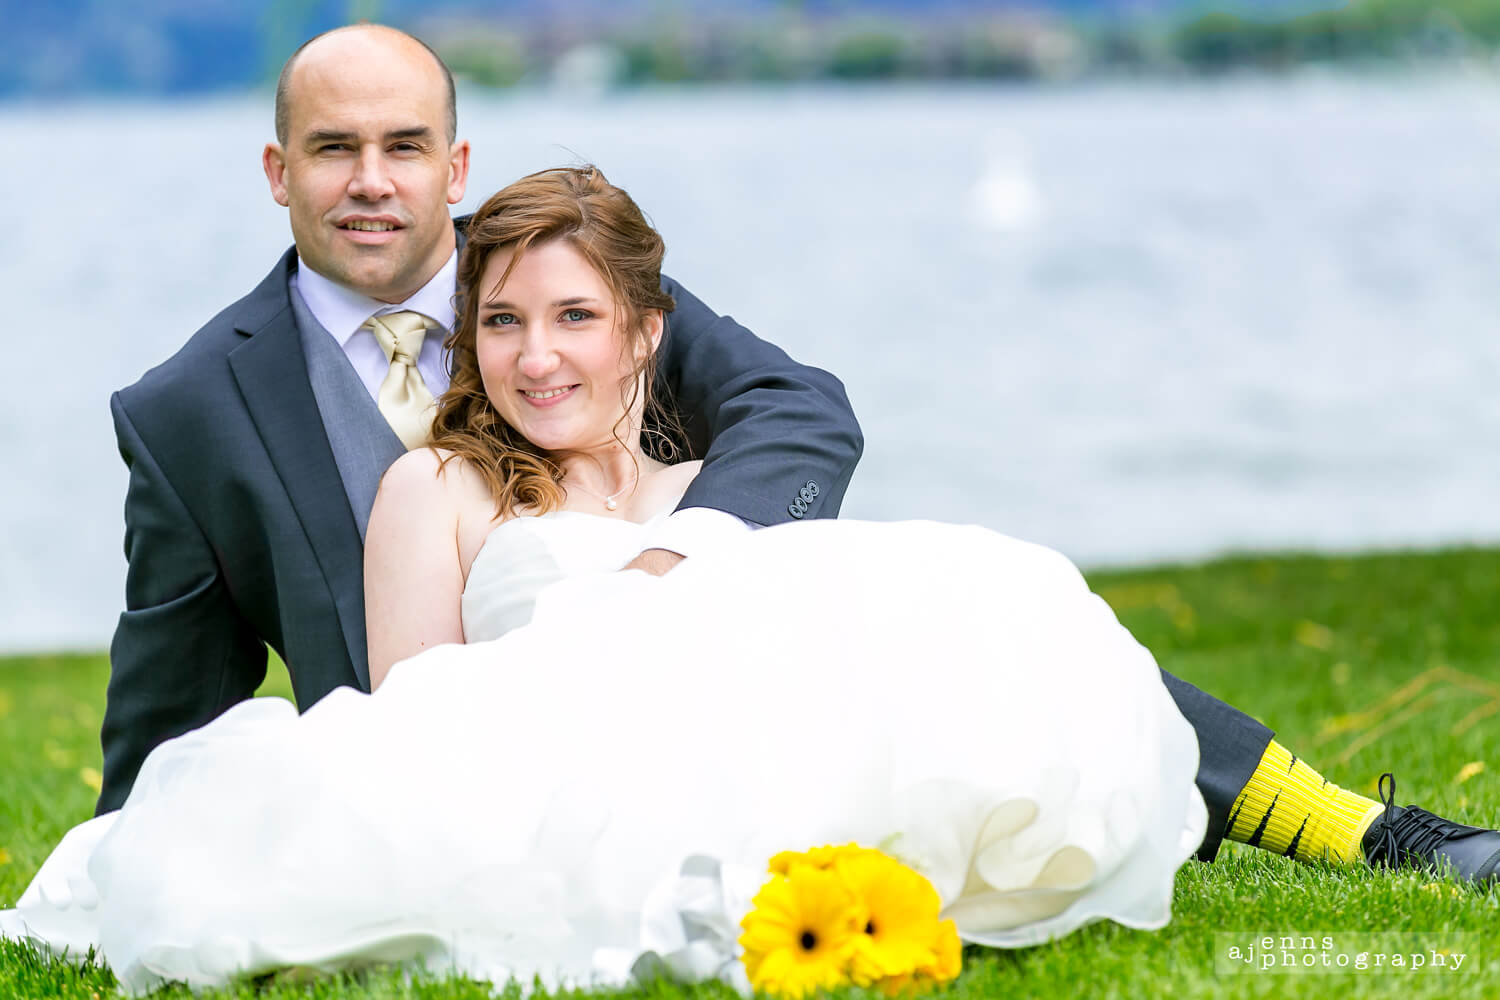 Bianca and Scott sitting in the grass by the lake